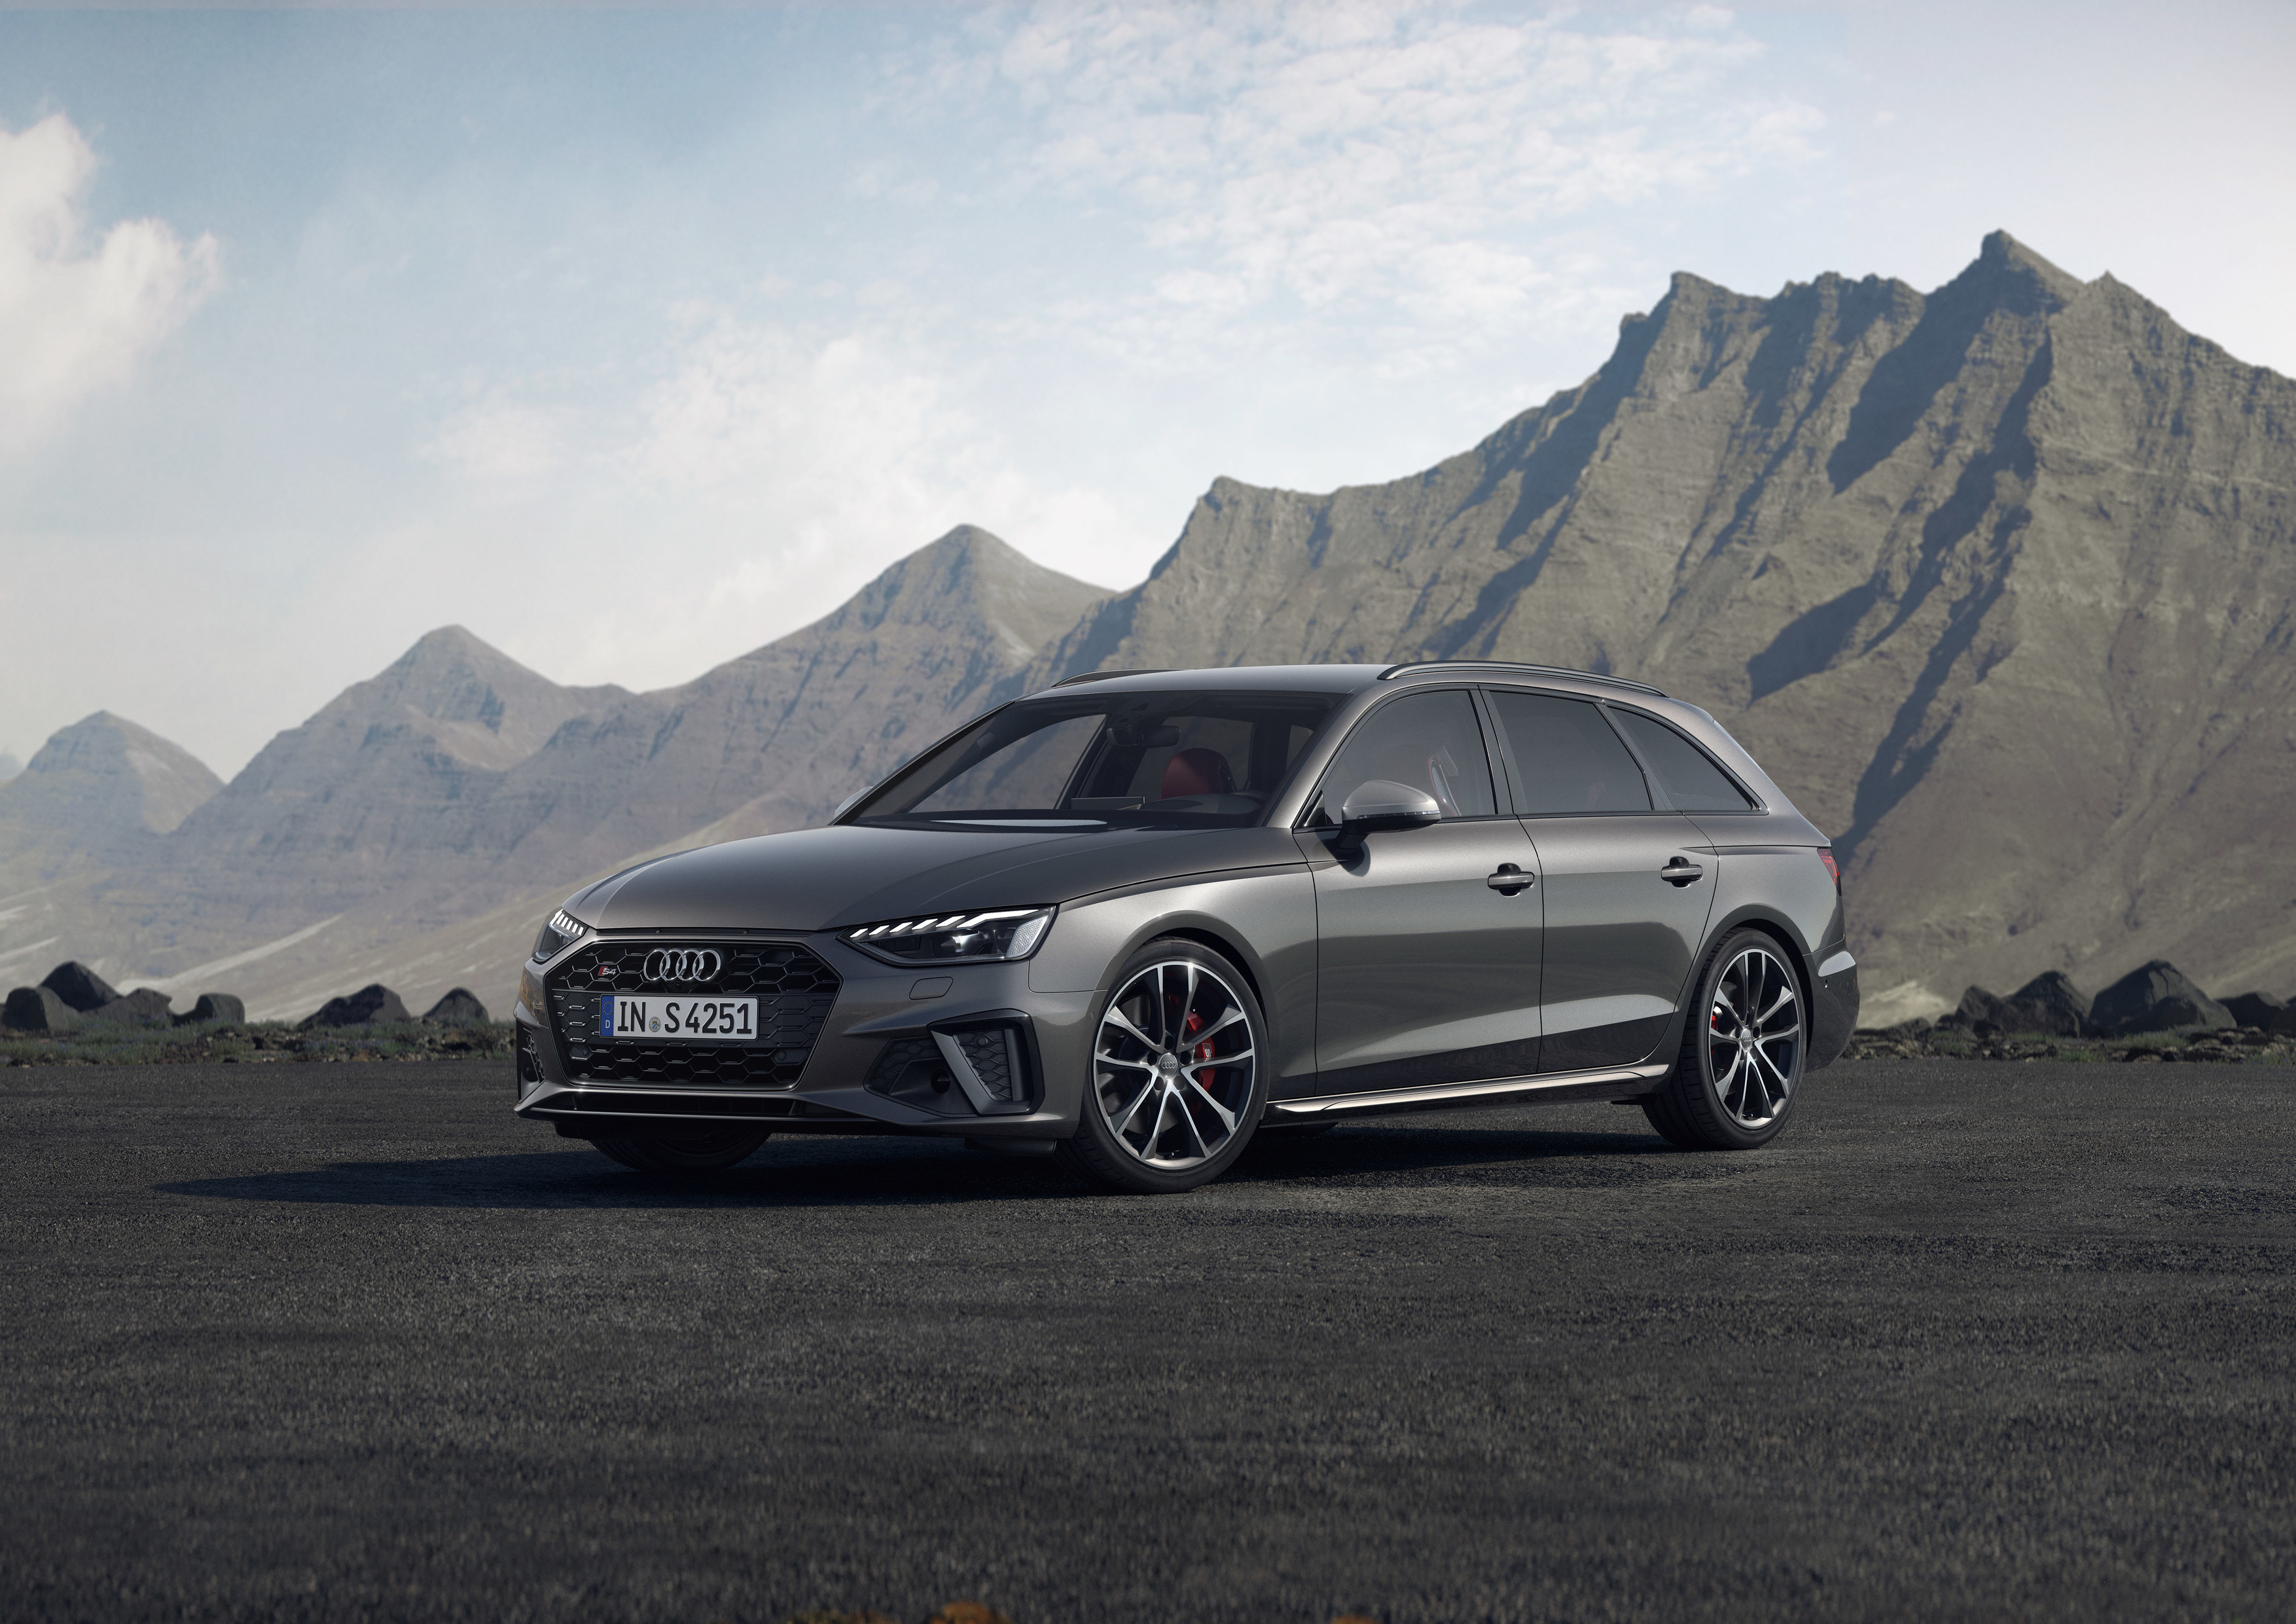 2020 Audi Q4: News, Design, Engines, Release >> 2020 Audi A4 Lineup Fresh Face New Mild Hybrid System And S4 Goes